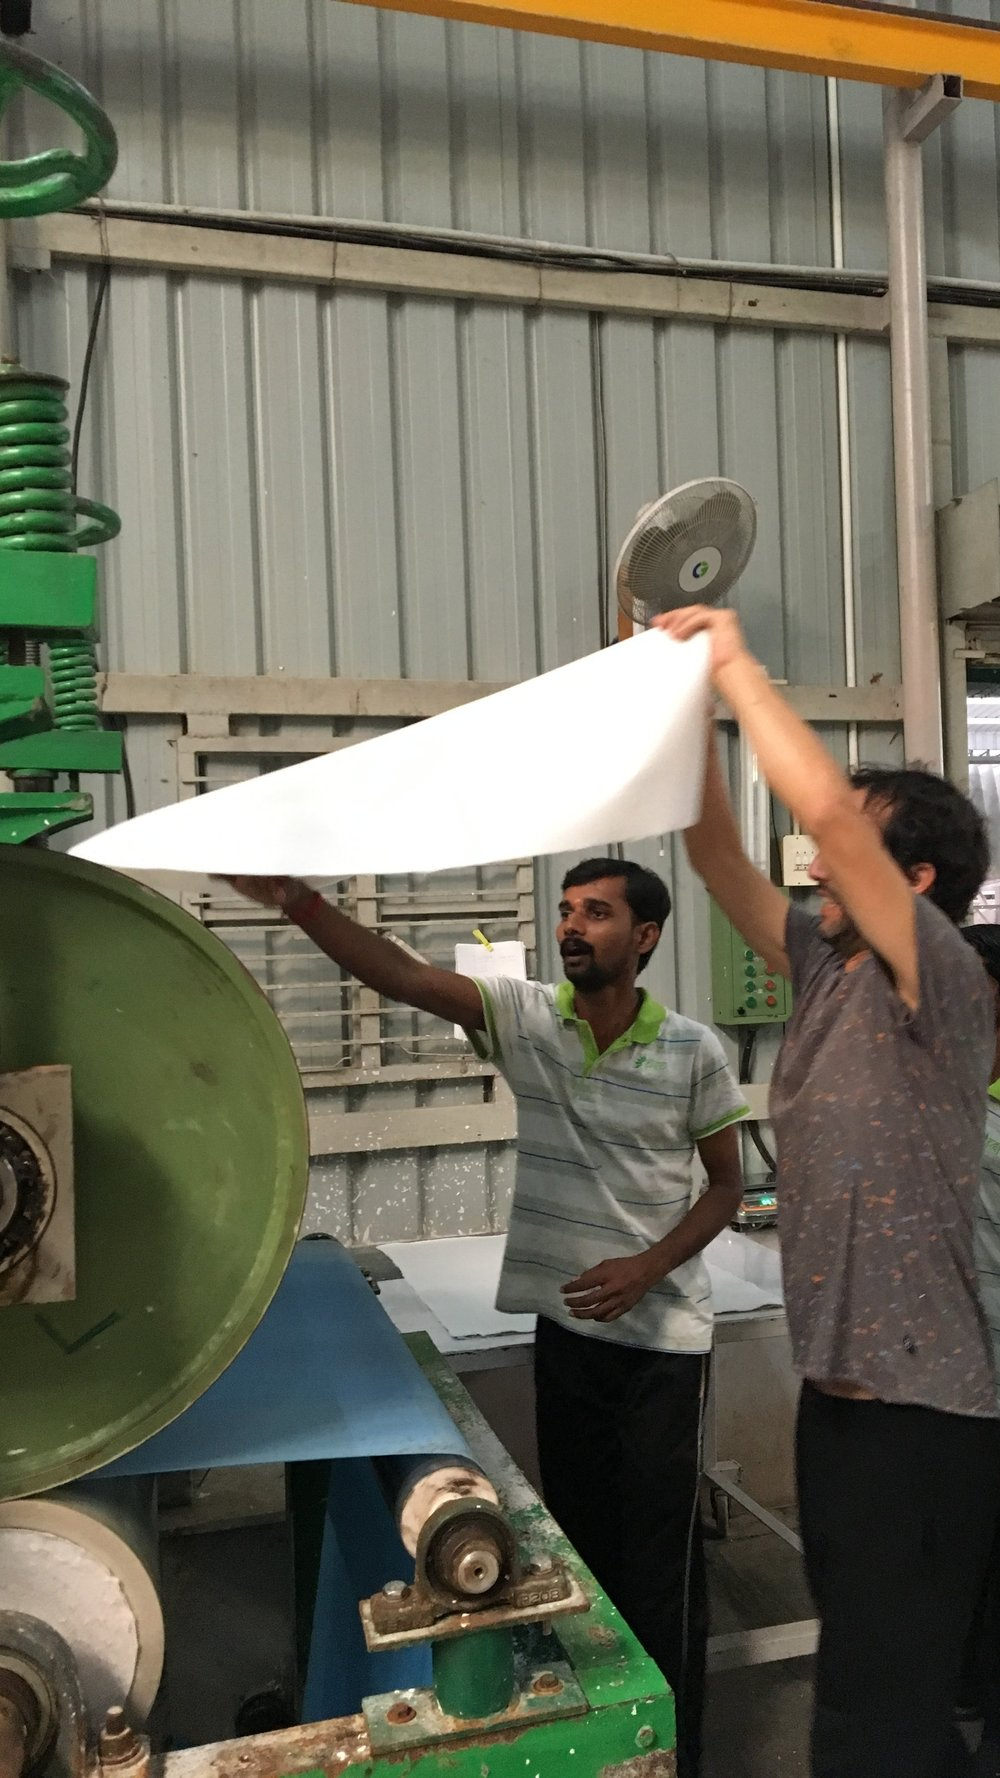 Unser Betriebsleiter Andi an der Papiermaschine |  Our operations manager Andi having fun with paper making